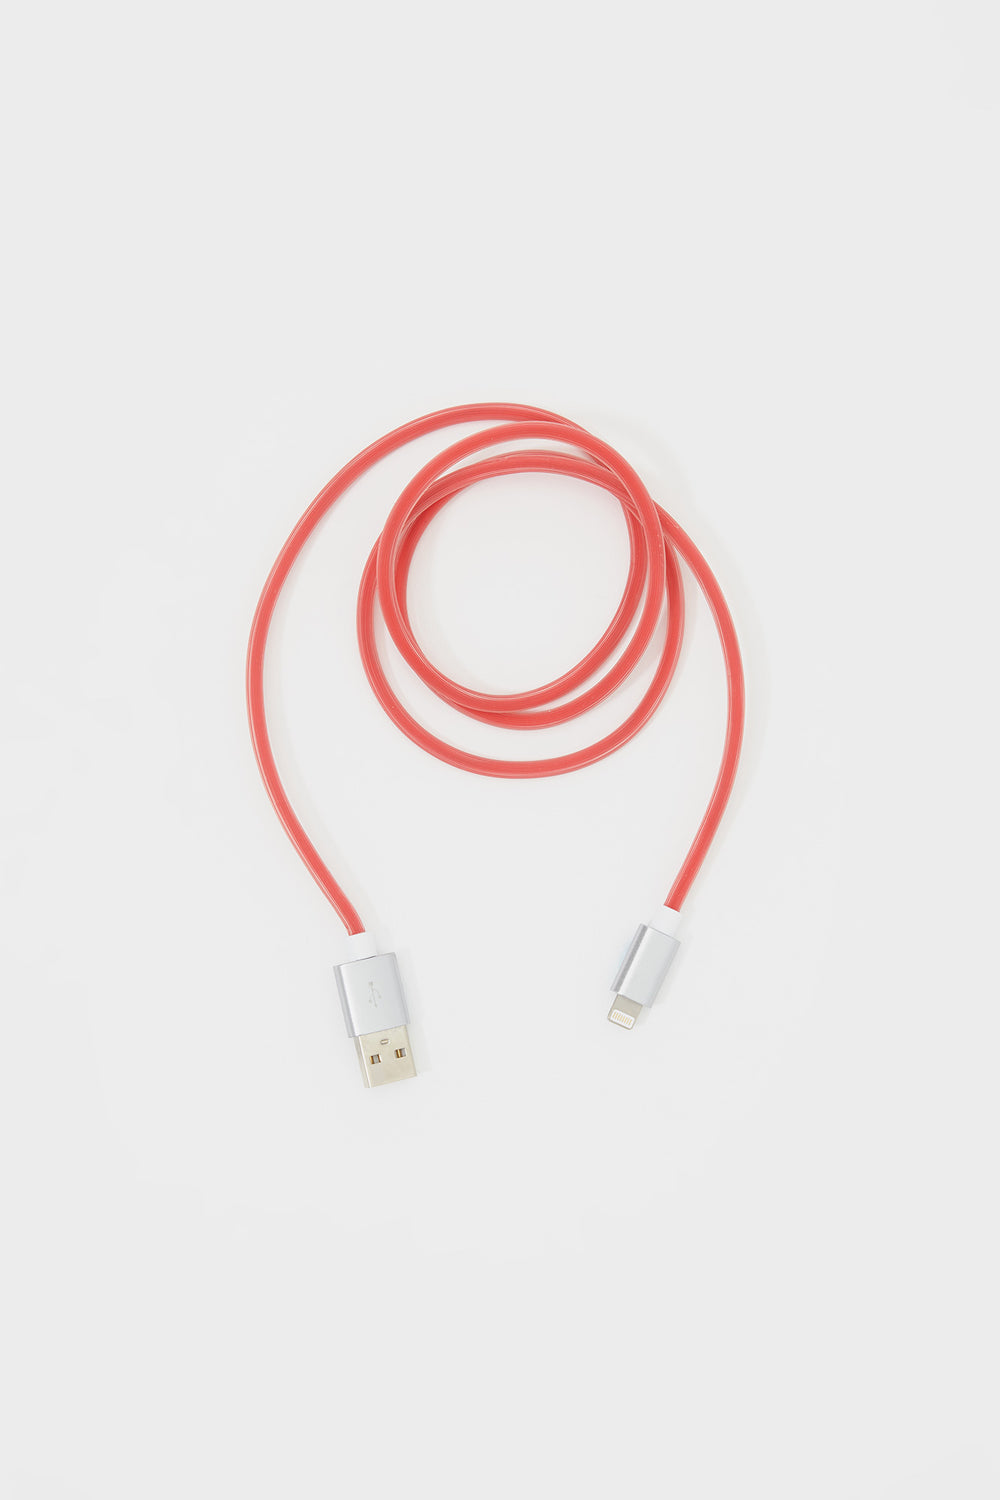 Silicone iPhone Lightning USB Cable Red